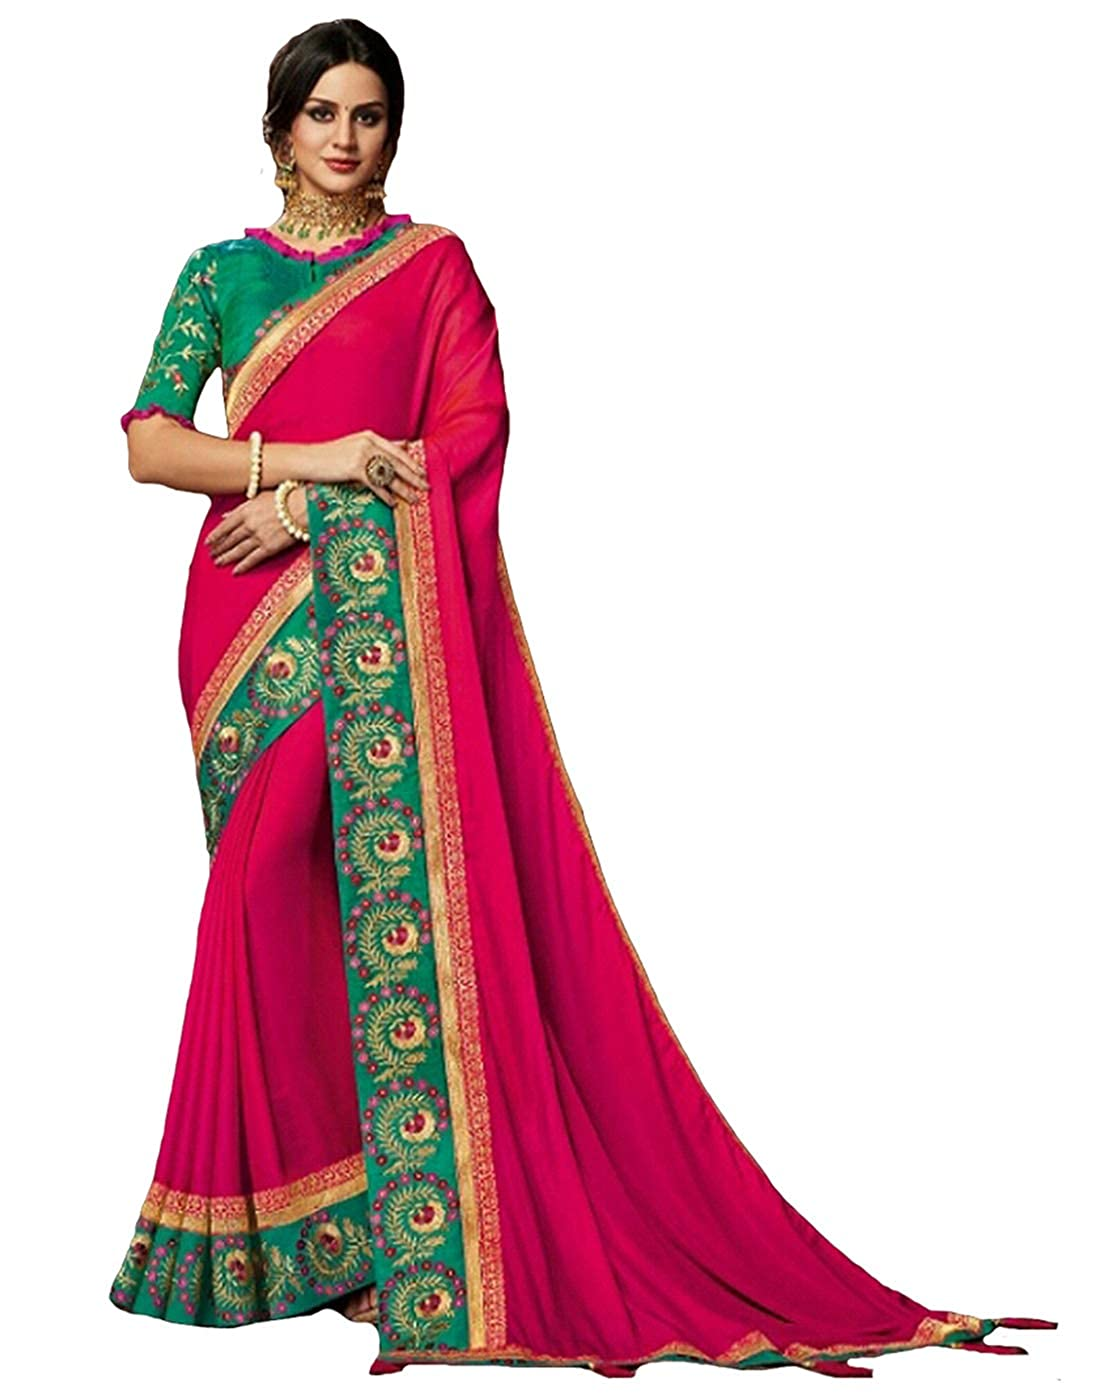 a6450ed1a1 Amazon.com: DesiButik's Party Wear Lovely Pink Satin Silk Saree: Clothing